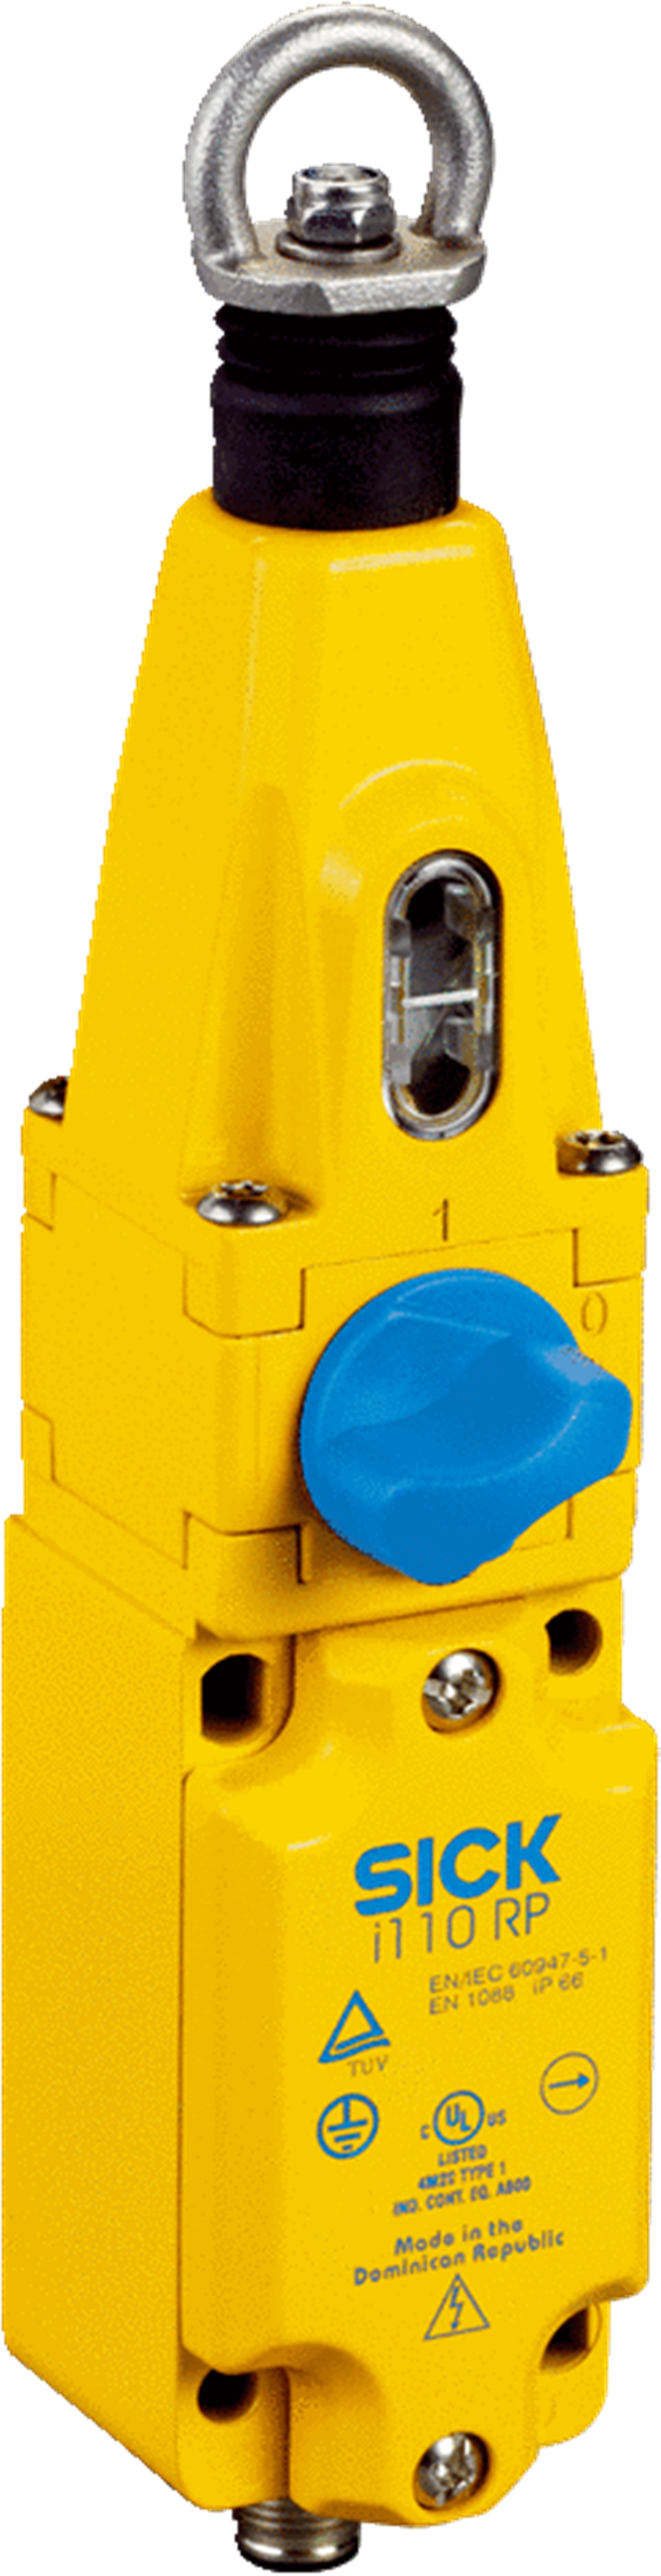 i110-RP224 Safety switch - Image - 1